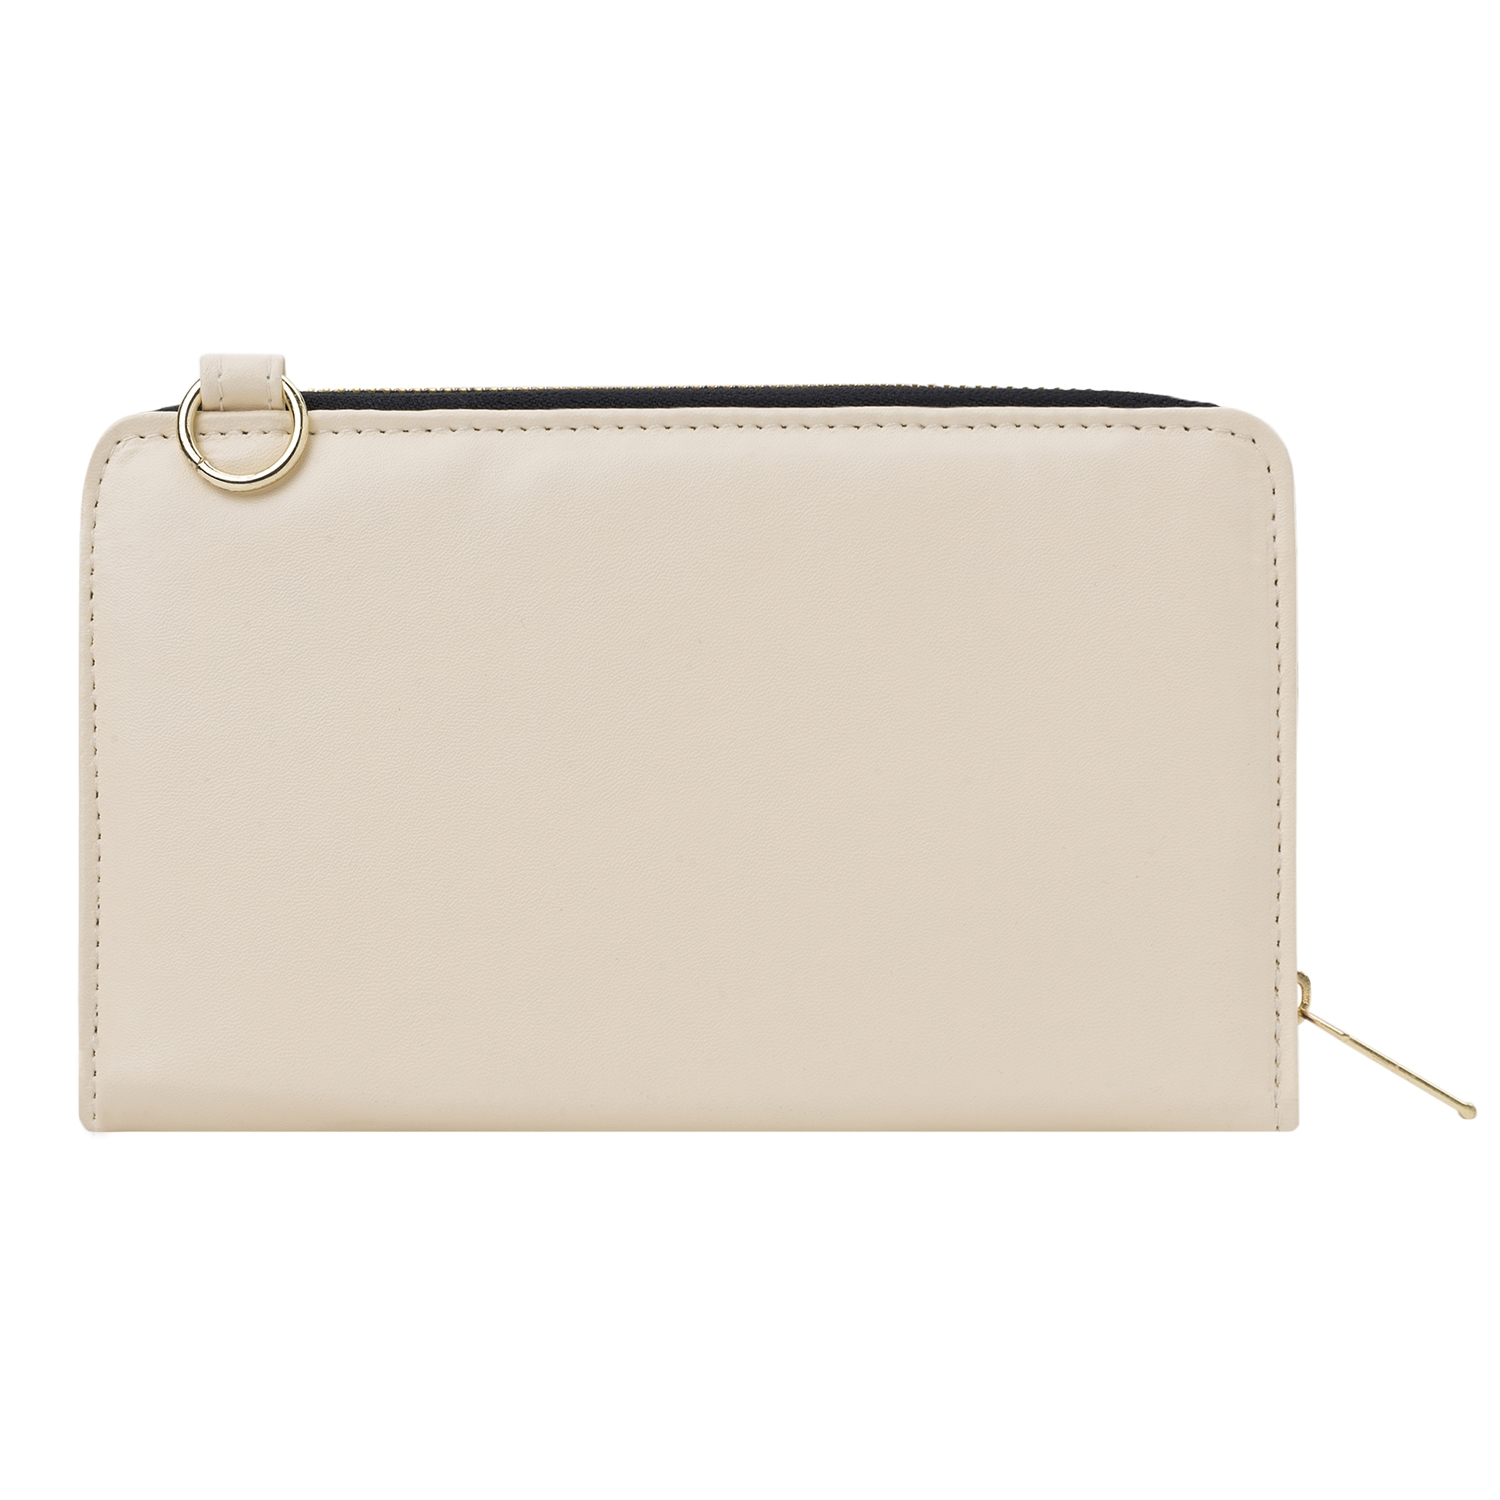 Venice II Clutch (Cream/Yellow)